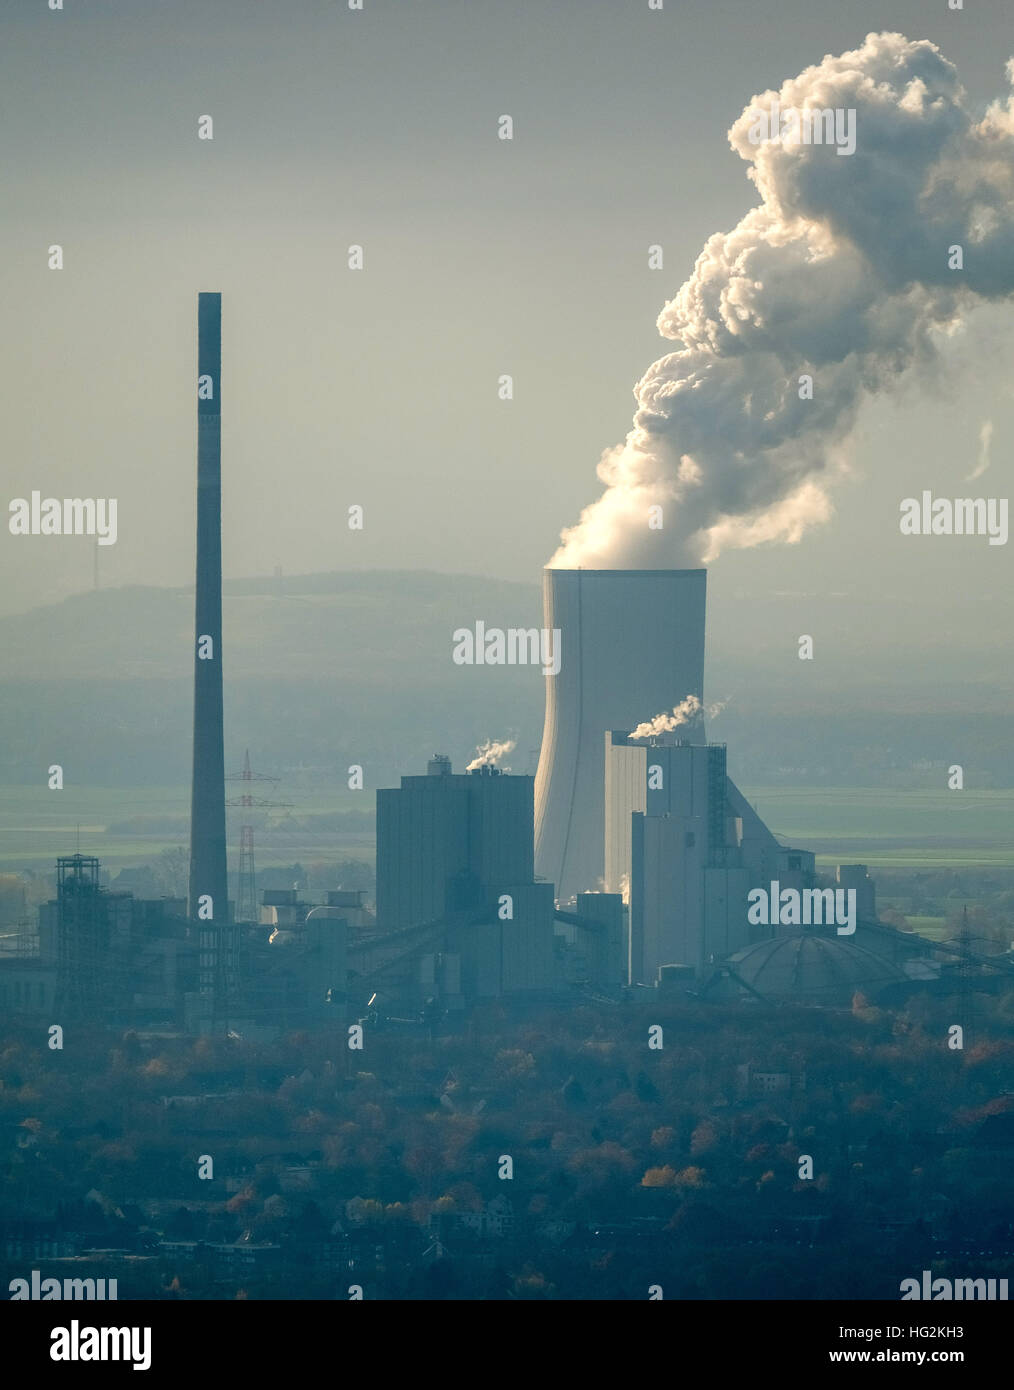 Aerial view, STEAG Walsum power plant, coal plant, fossil energy, cooling tower, smoke, Duisburg, Ruhr aeria, - Stock Image